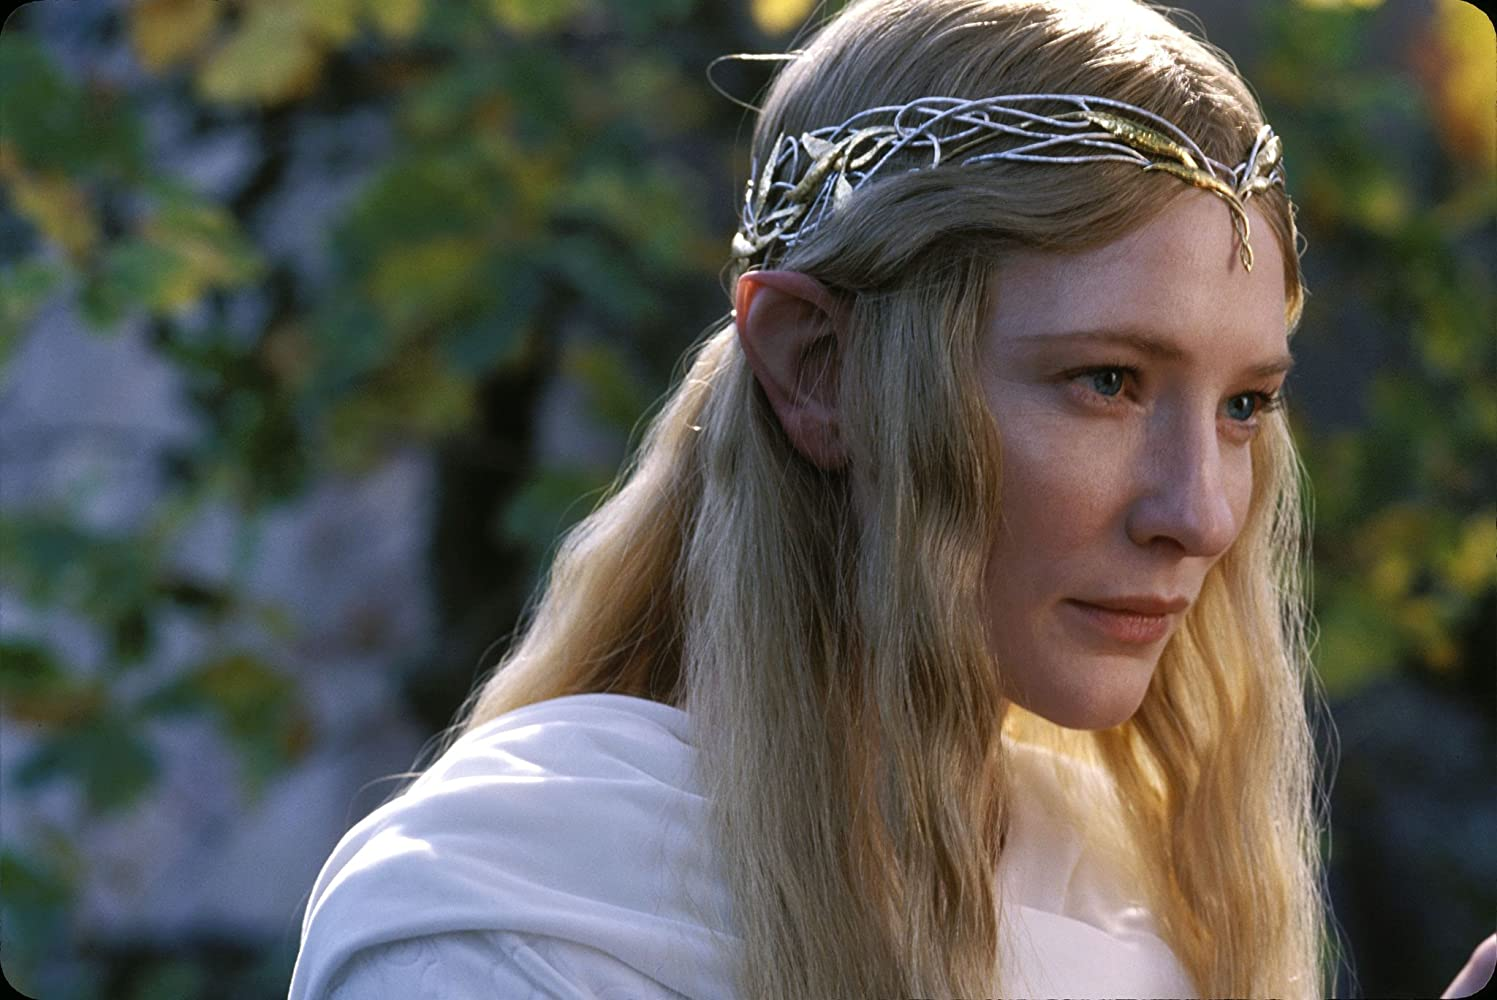 Cate Blanchett in The Lord of the Rings: The Fellowship of the Ring (2001)